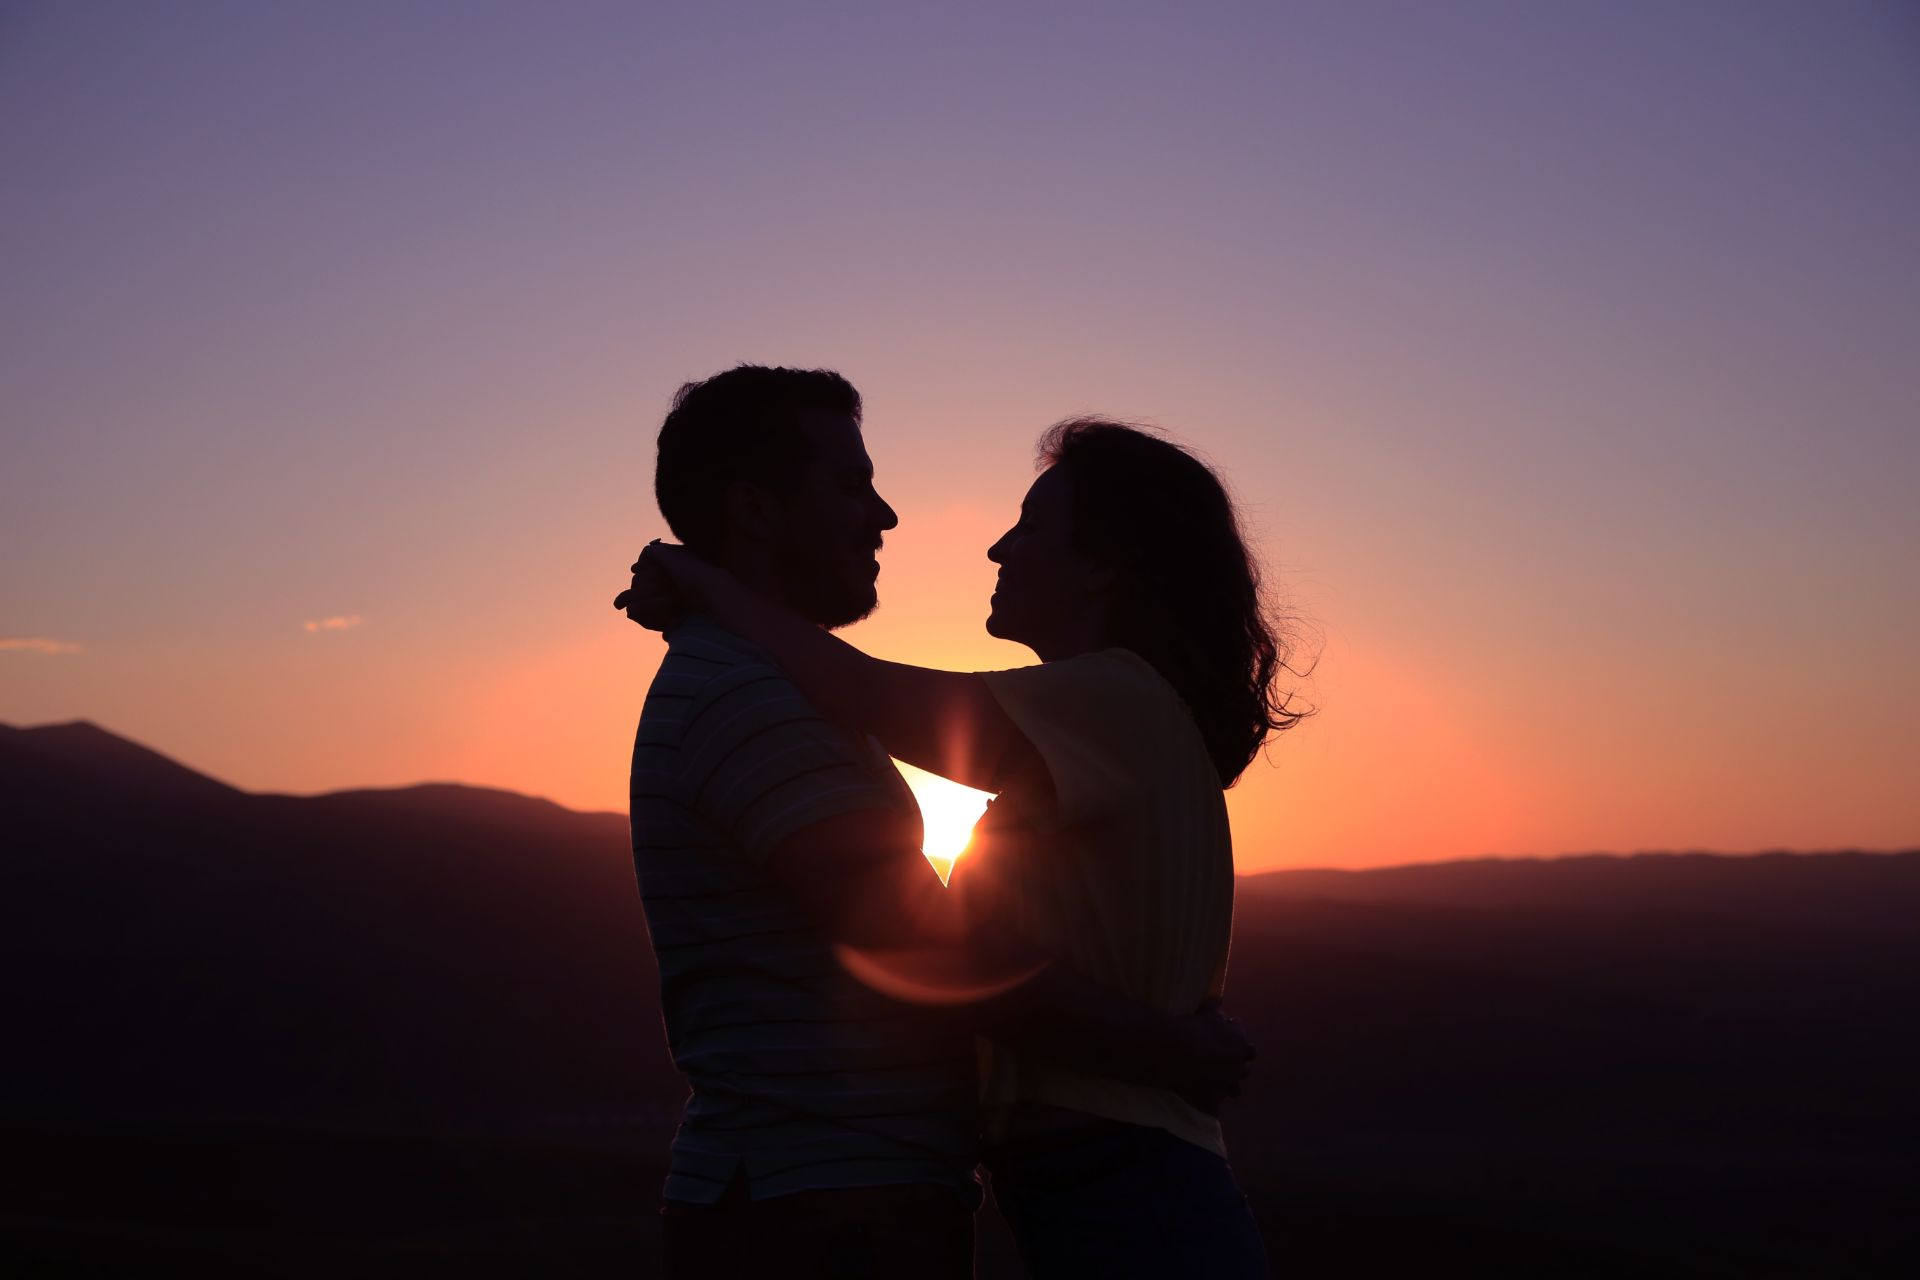 Couple, a silhouette of a man and woman, embracing and hugging about to kiss while watching the sunset. 9 Things I Wish I Knew When I Started University